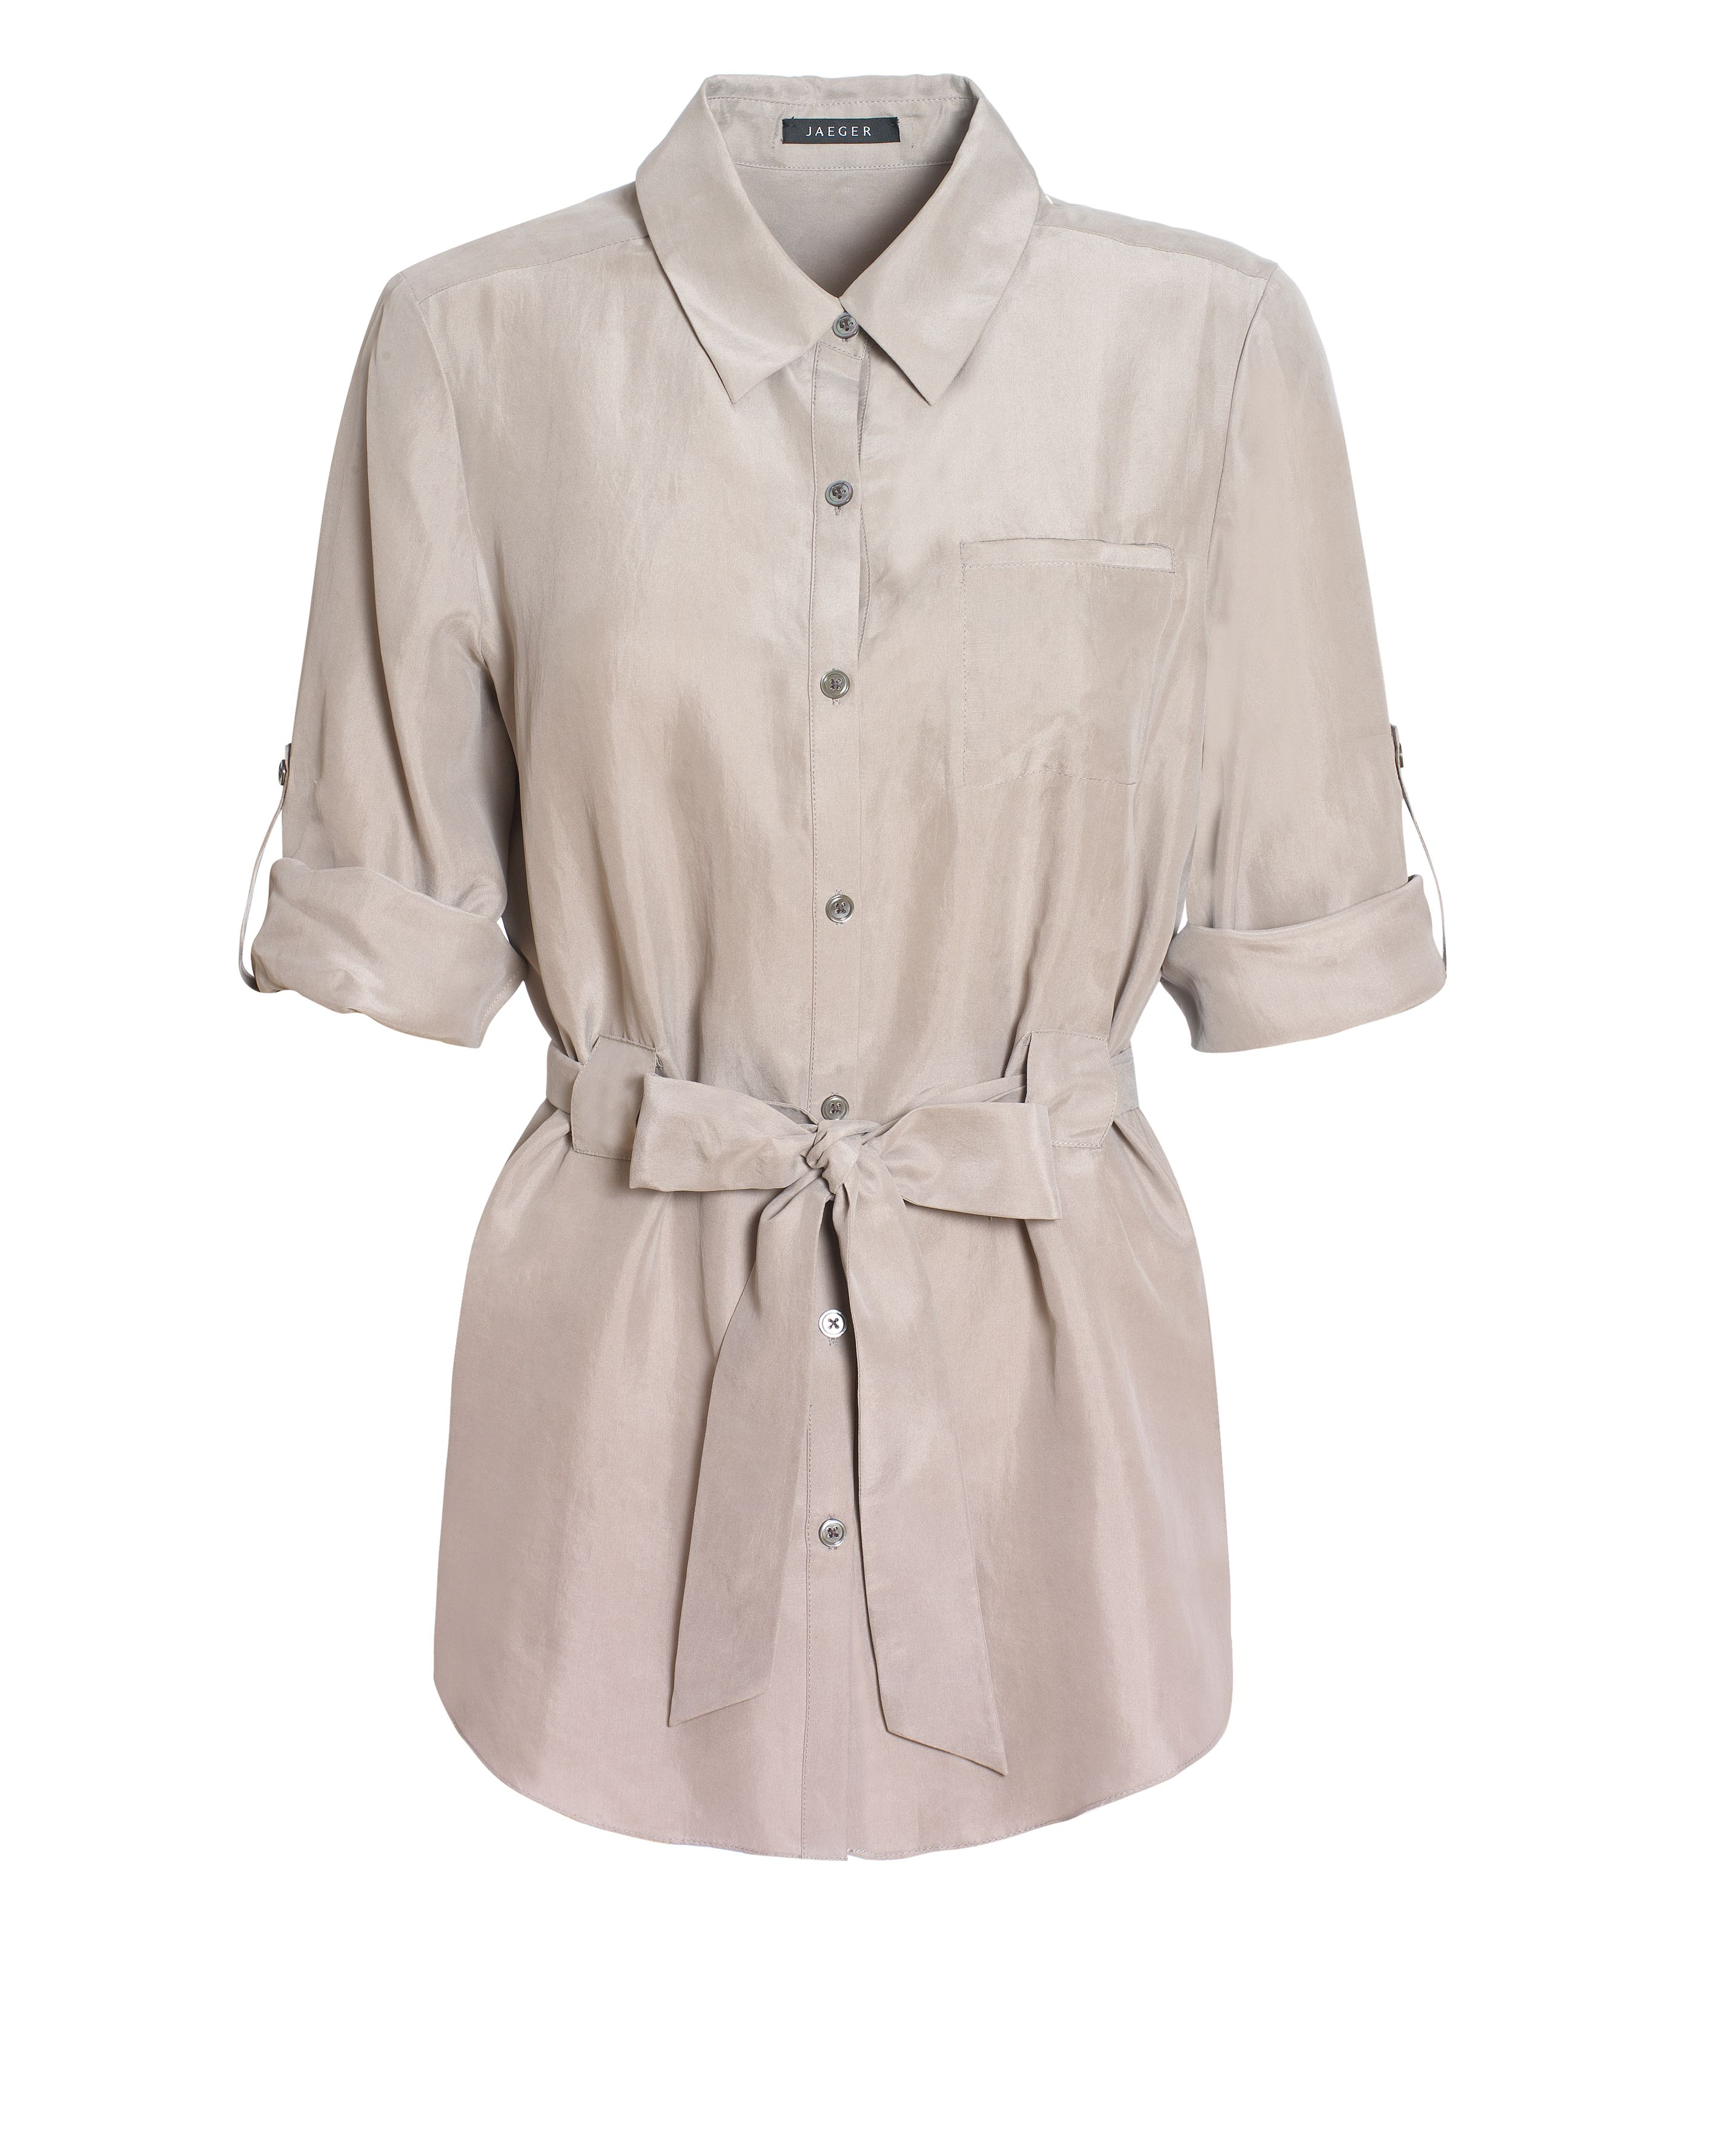 Jaeger Womens Jaeger Silk belted blouse, Smoke product image